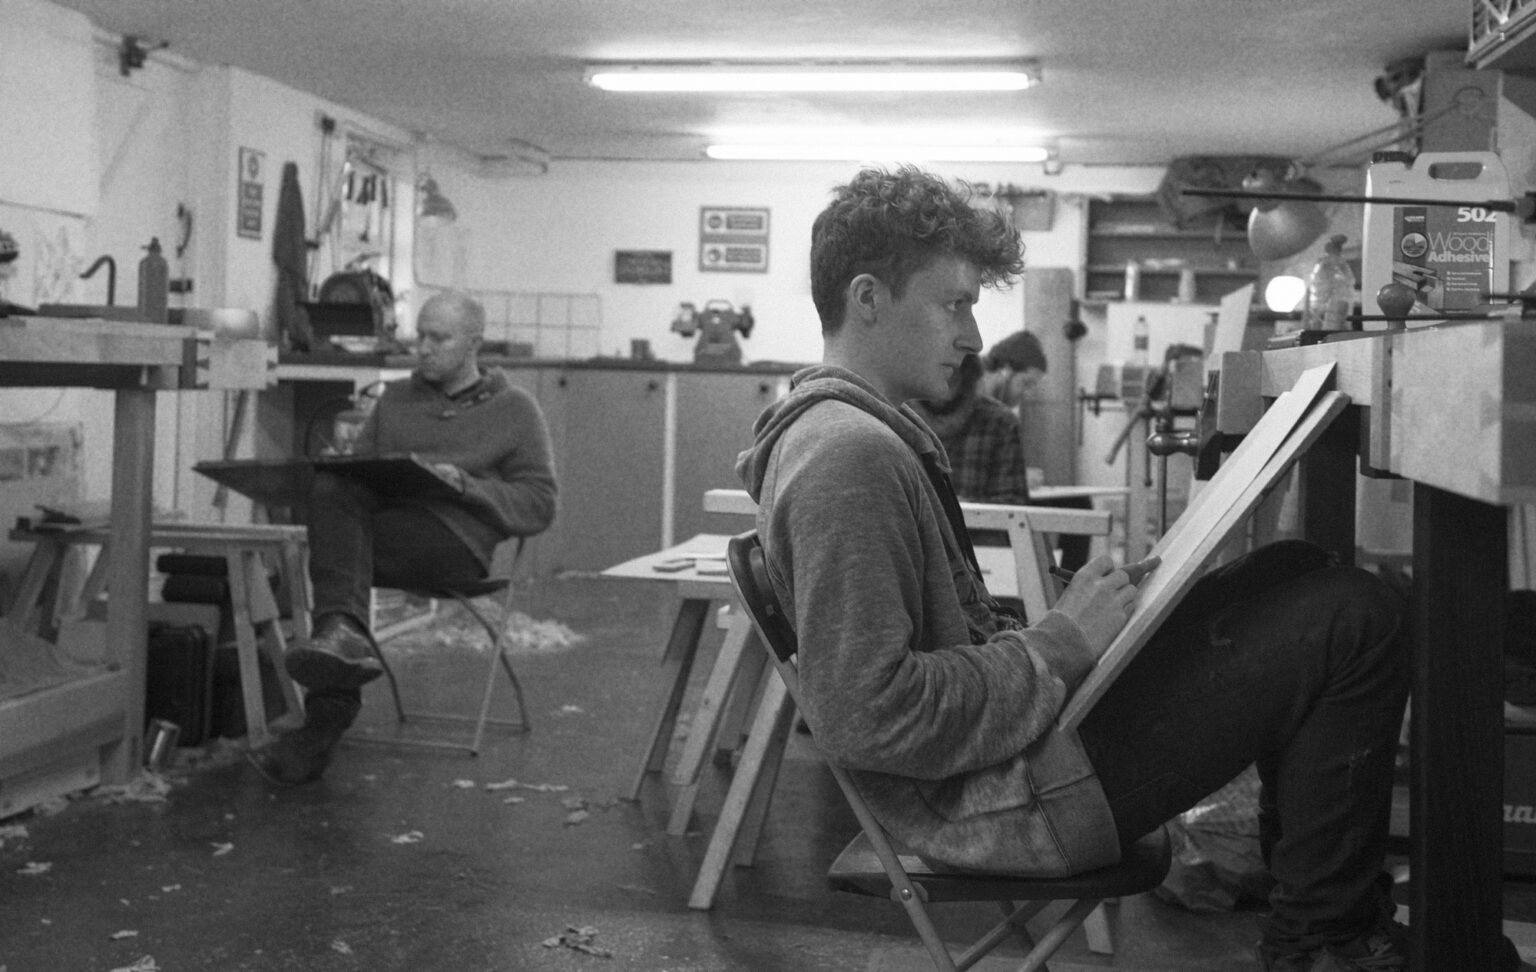 A GROUP TAKING TIME TO SKETCH ON A LEARN FURNITURE DESIGN COURSE AT ROWDEN ATELIER